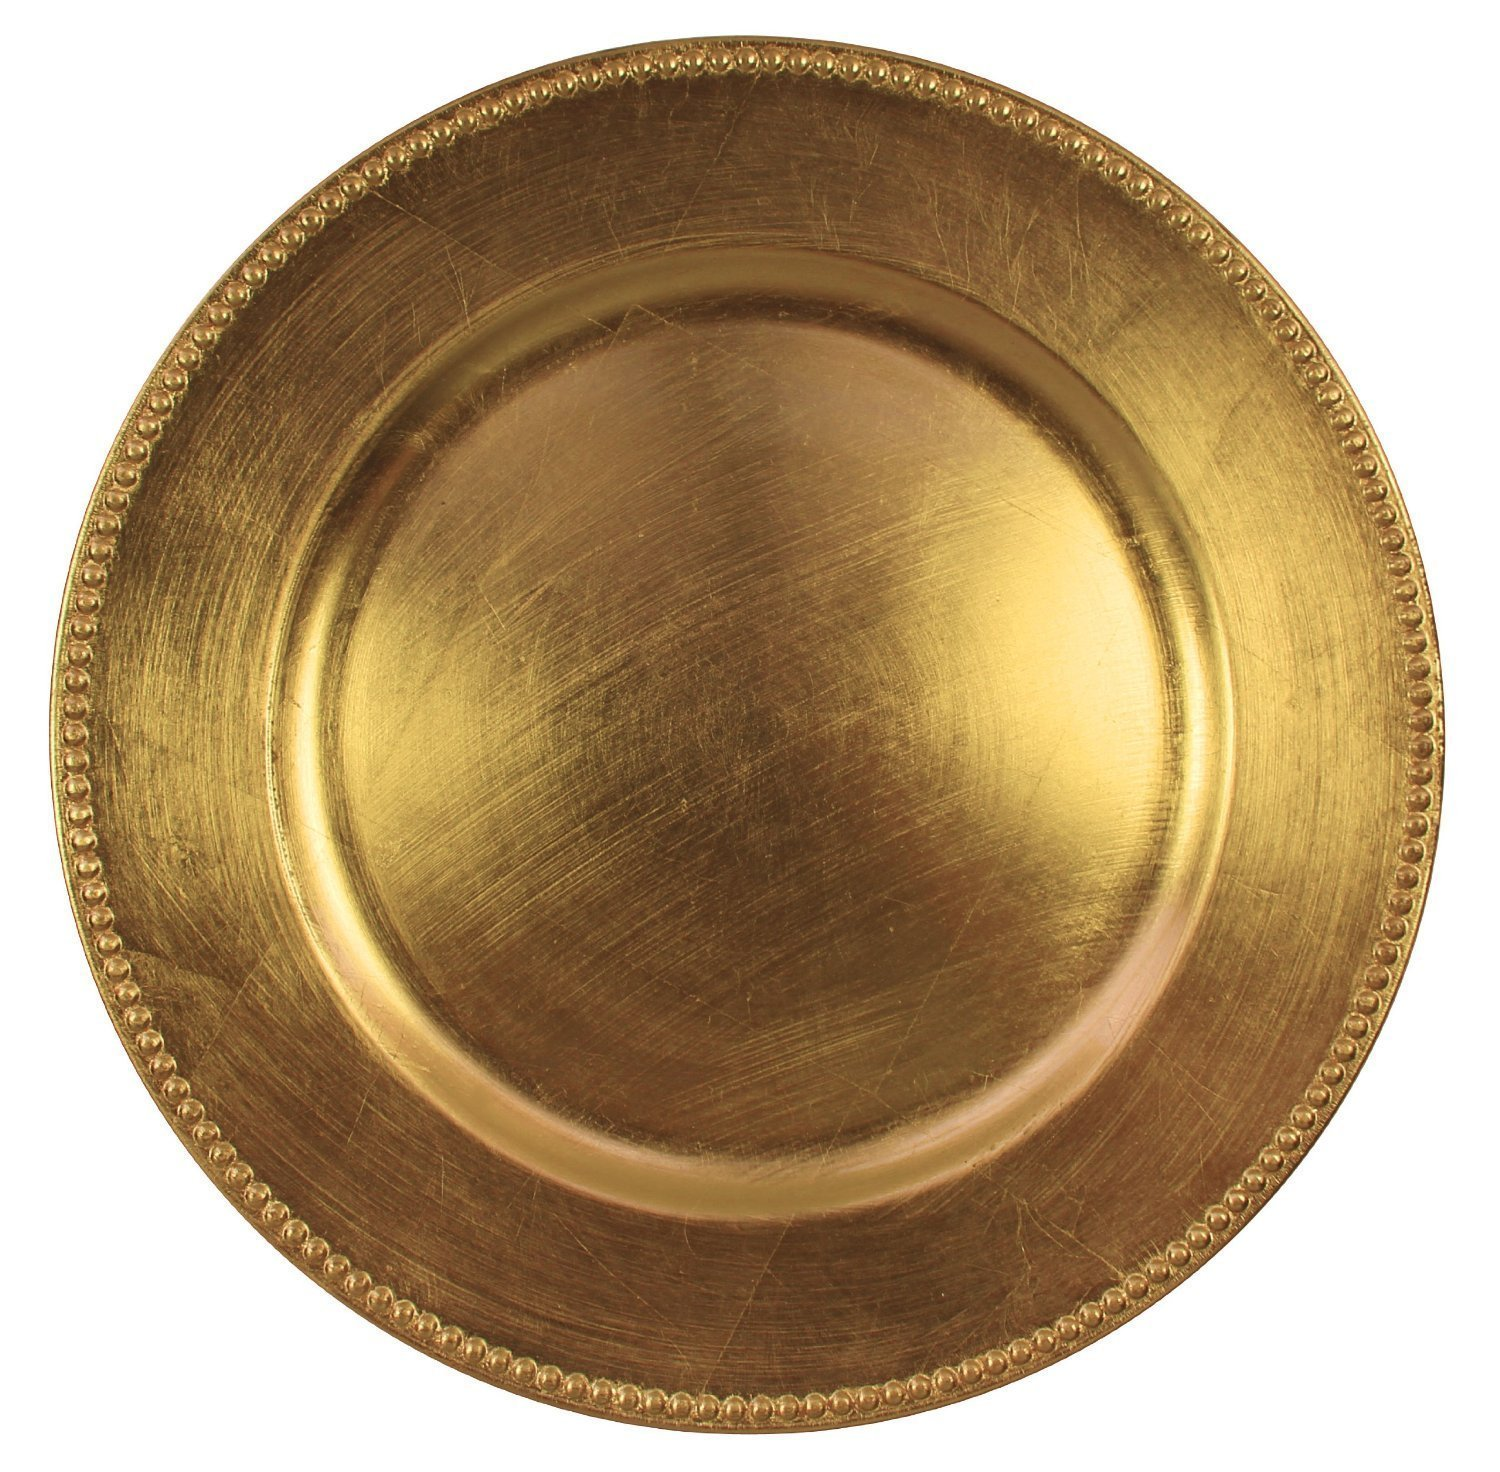 Round Charger Beaded Dinner Plates, Gold 13 Inch, Set Of 1,2,4,6, Or 12 (1)    Walmart.com